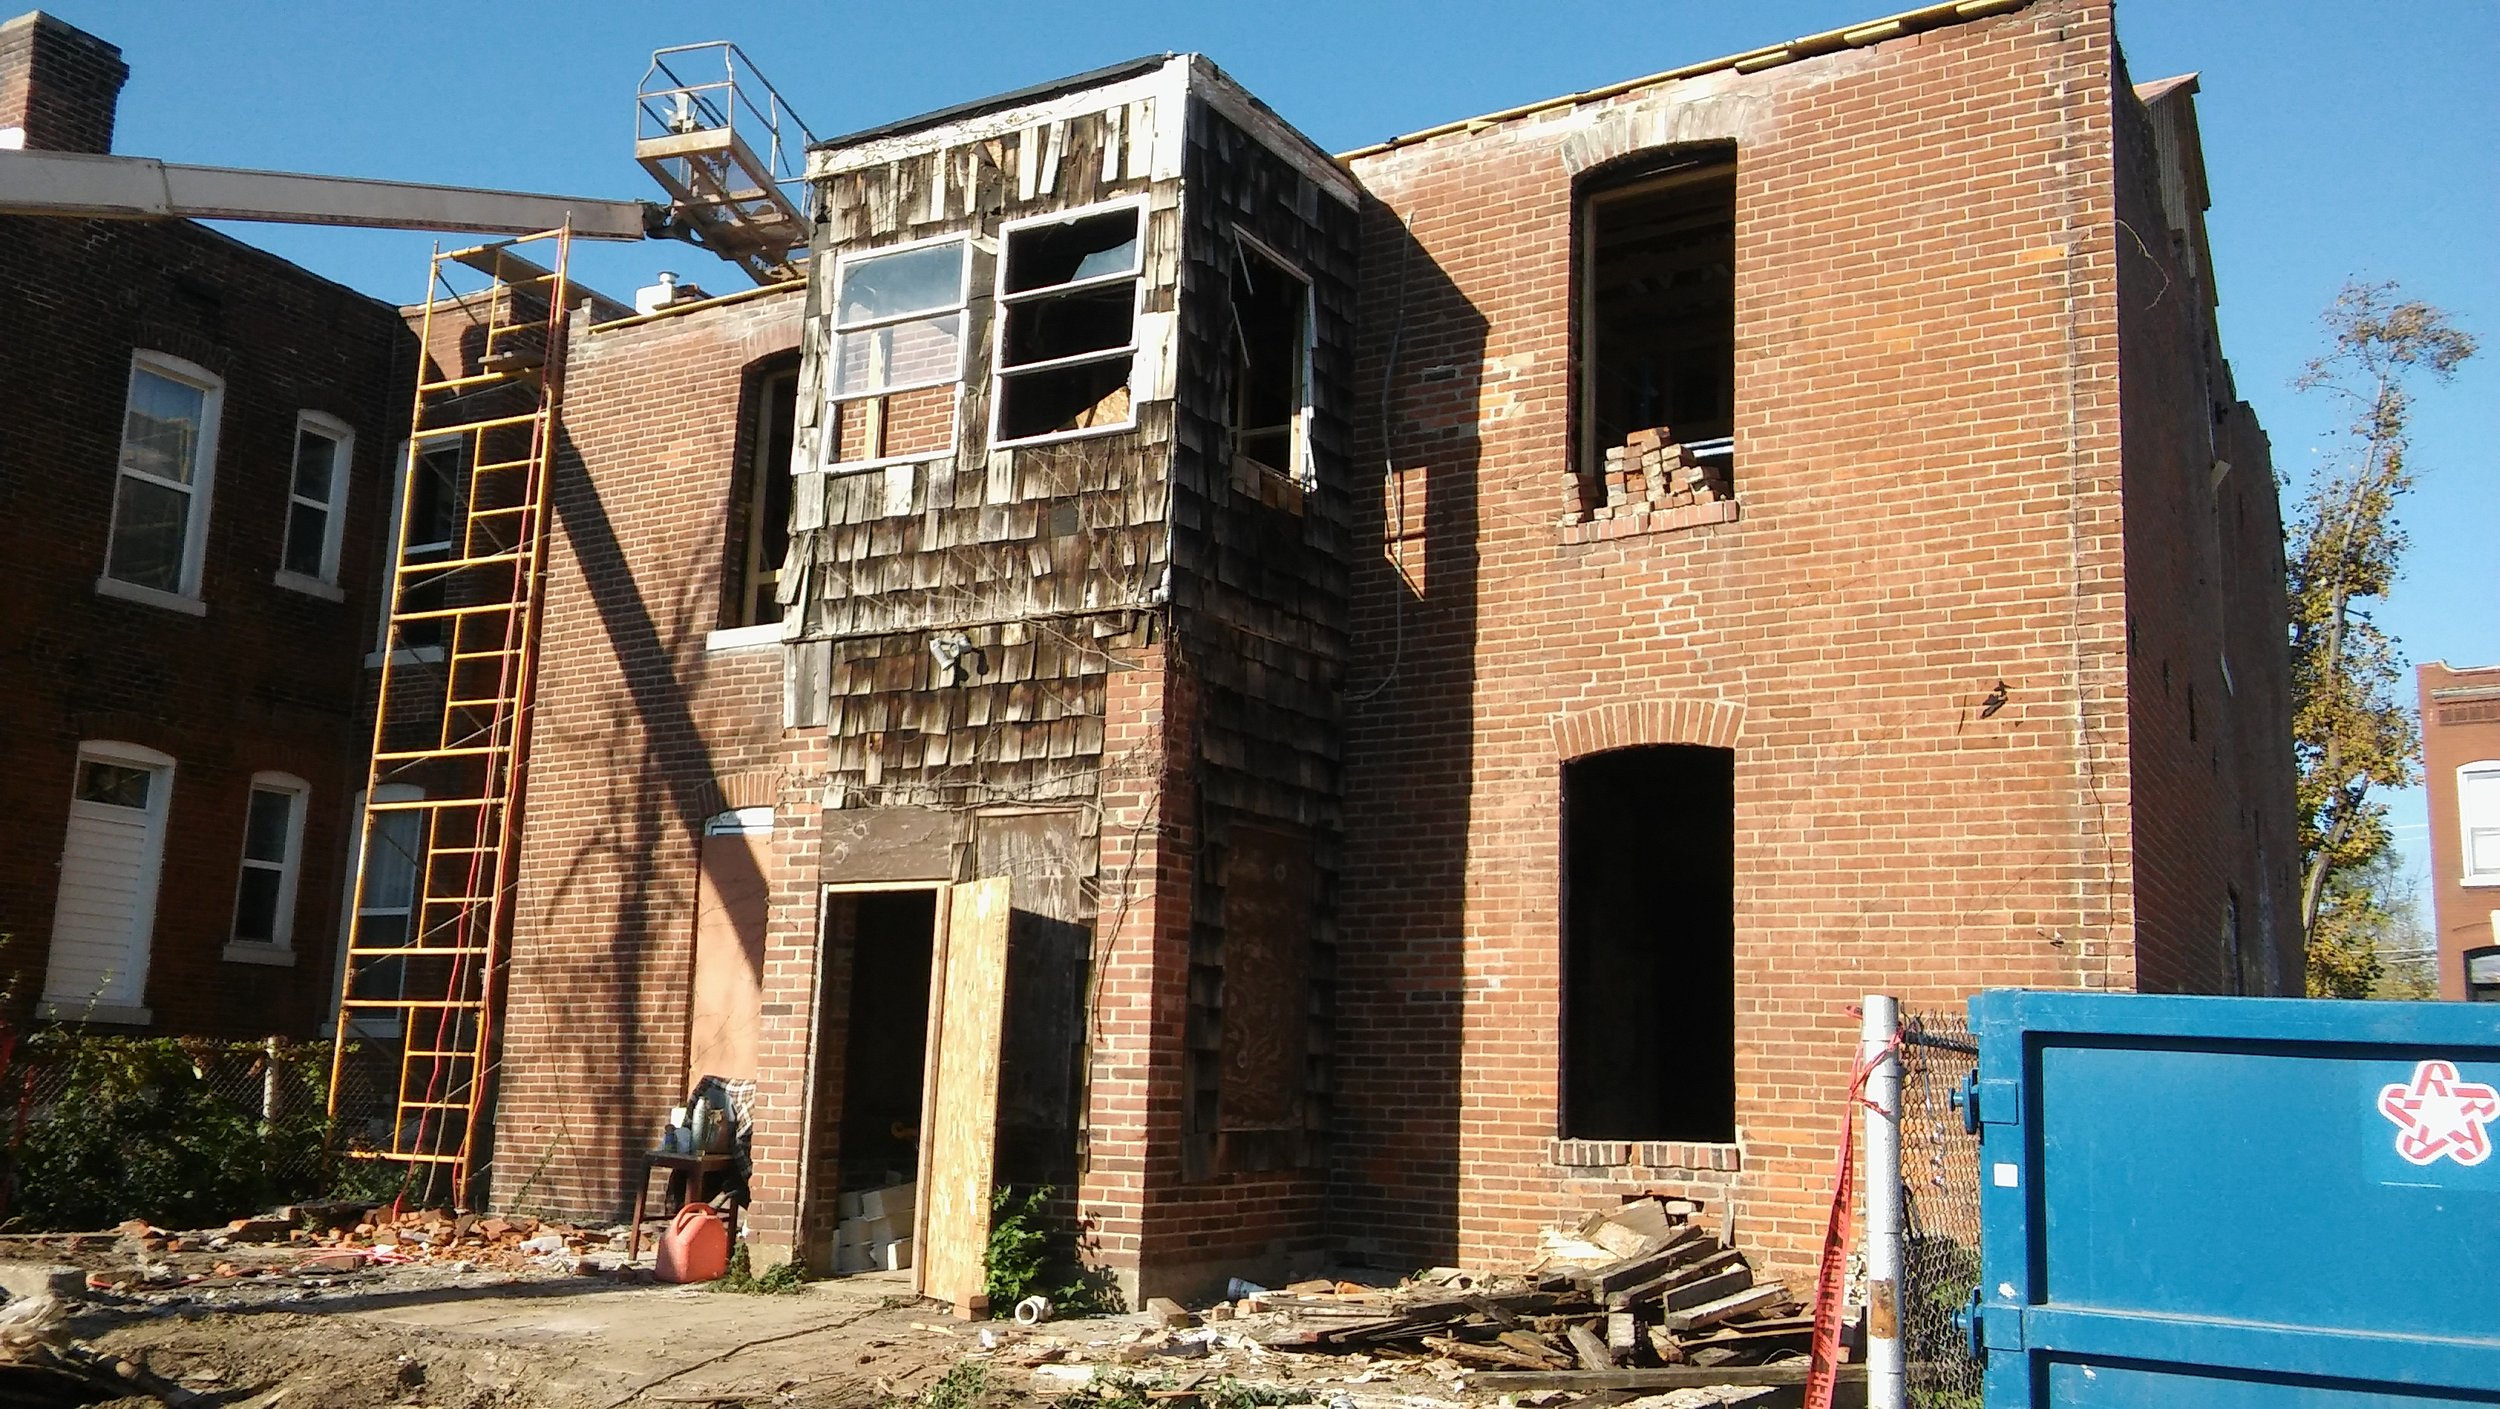 Back of 3114 After Fire and During Renovation